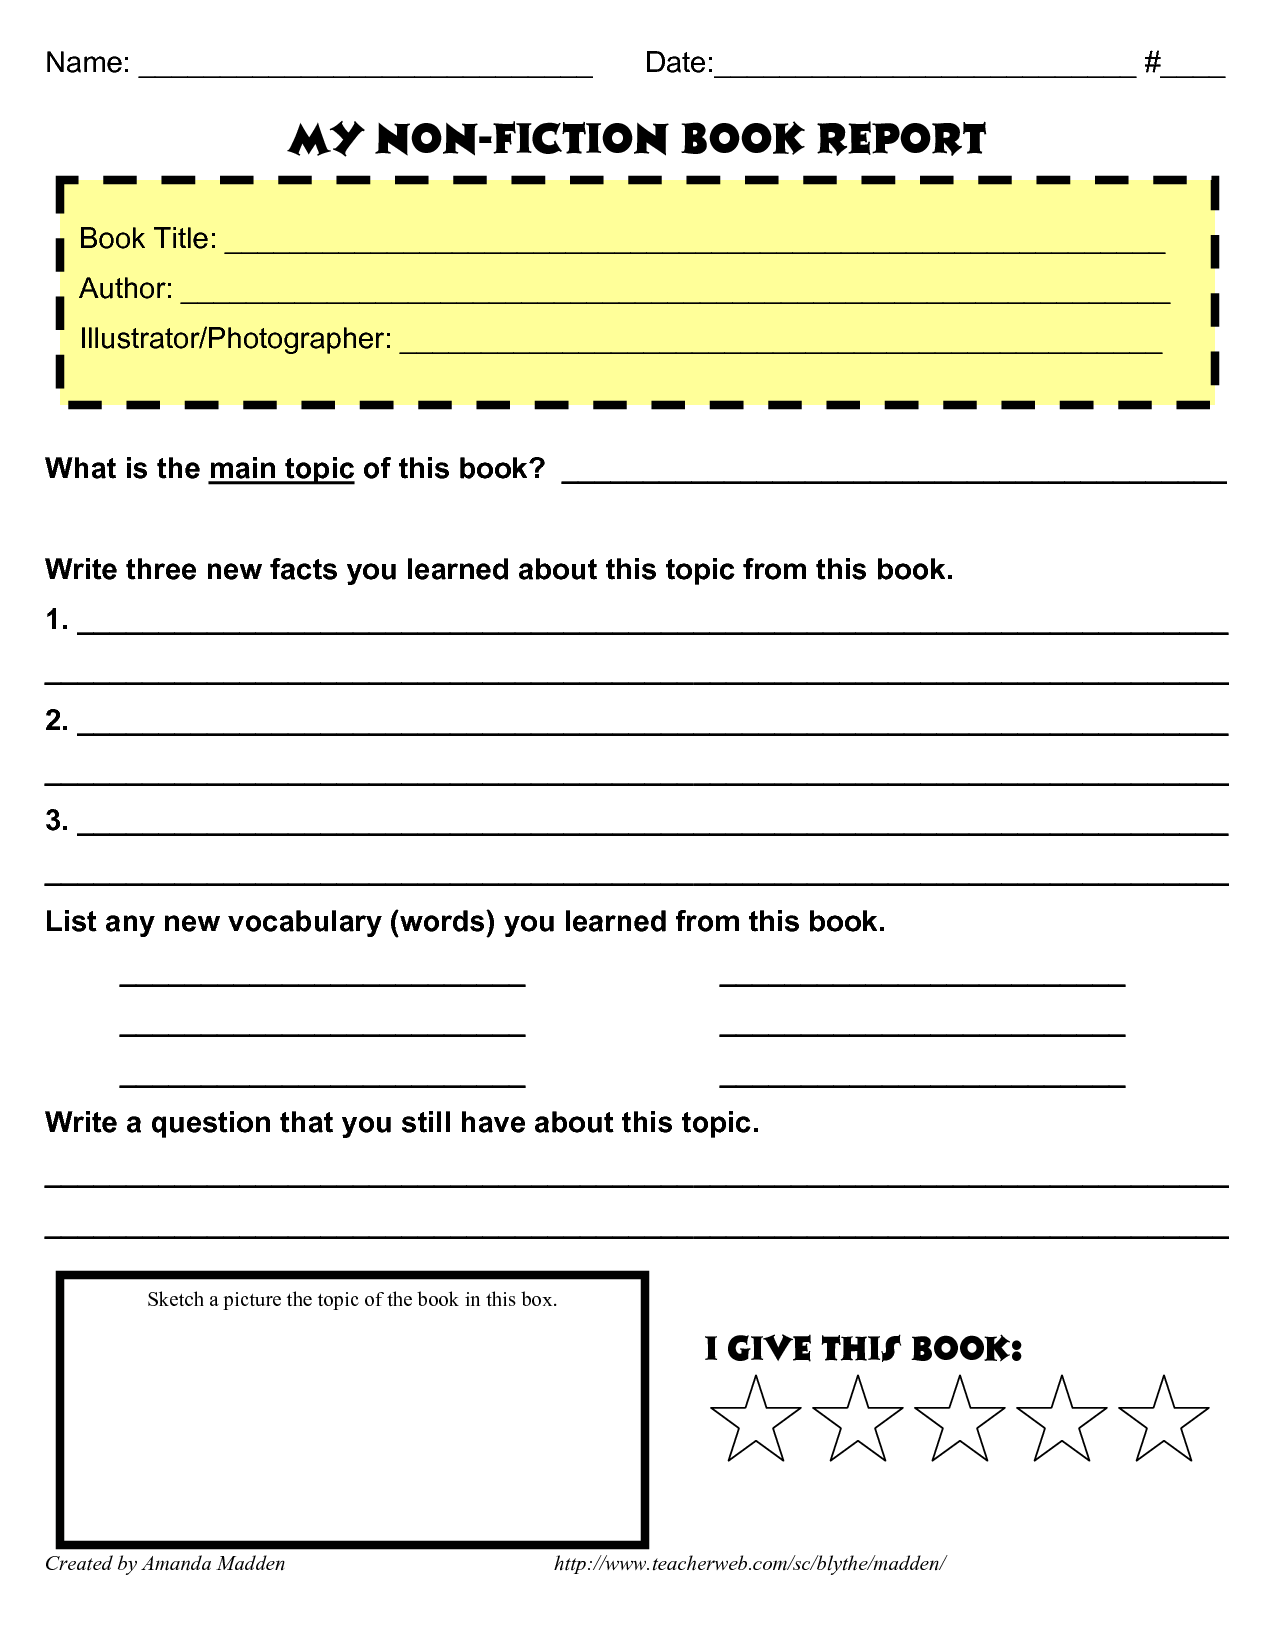 Book report templates for middle school